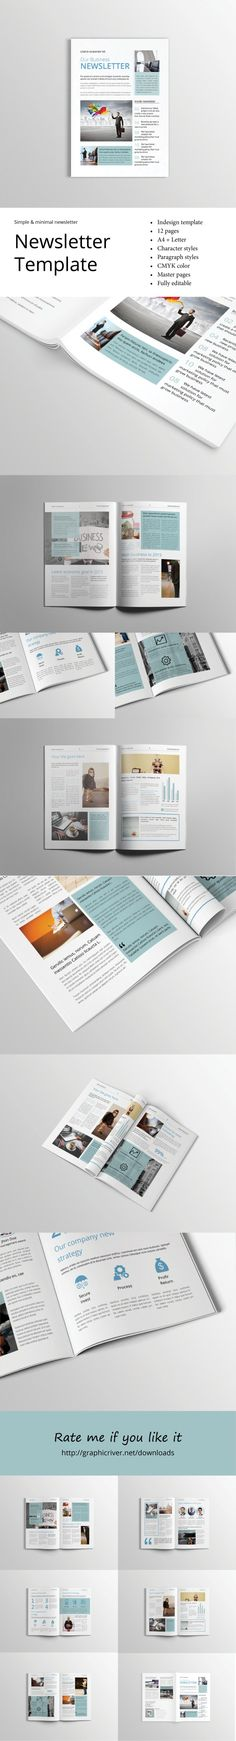 Best Indesign Newsletter Templates  Graphic Design